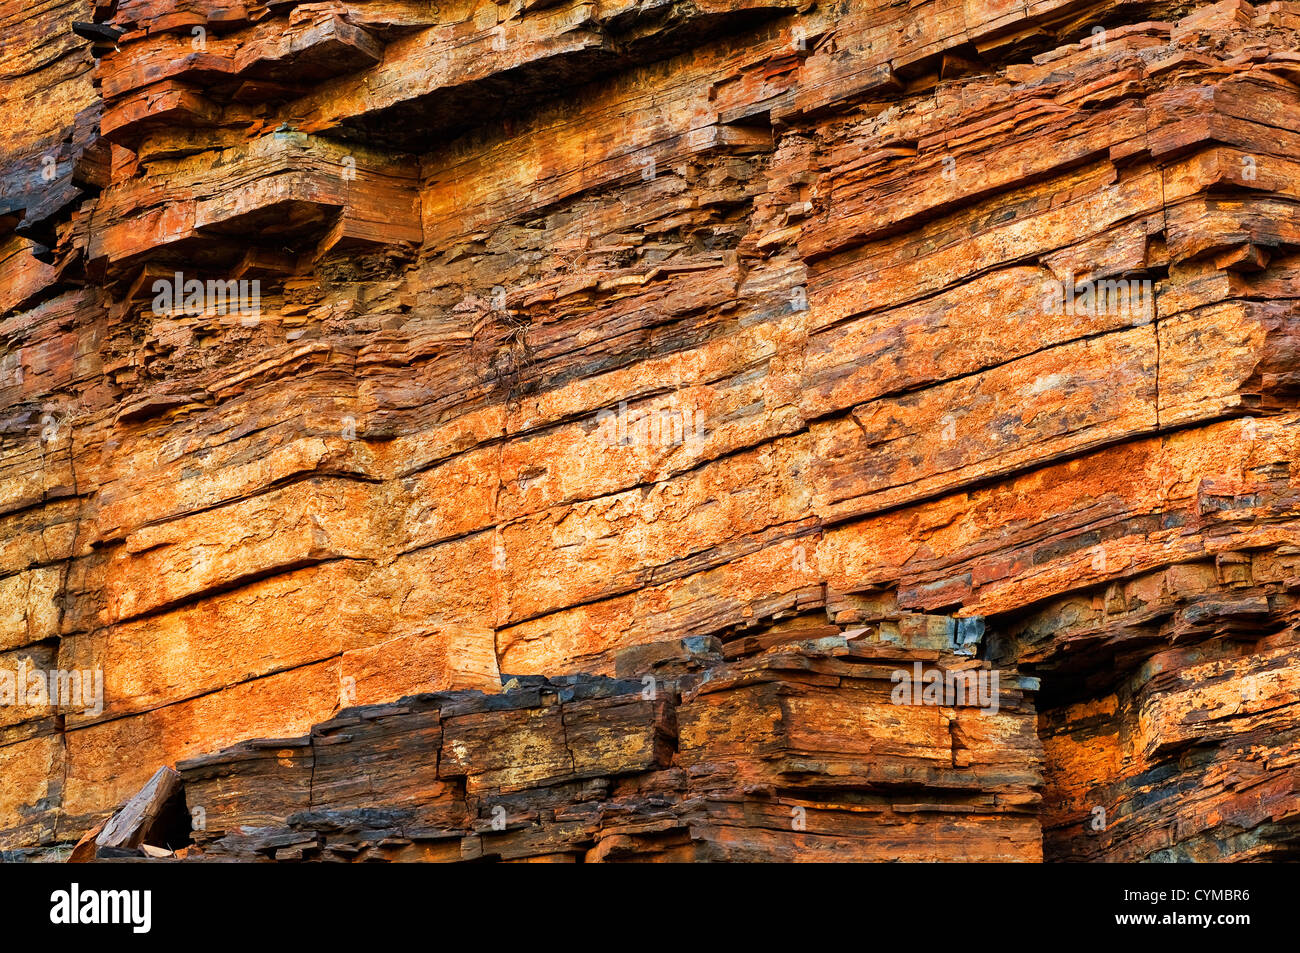 Rock wall in Dales Gorge. - Stock Image